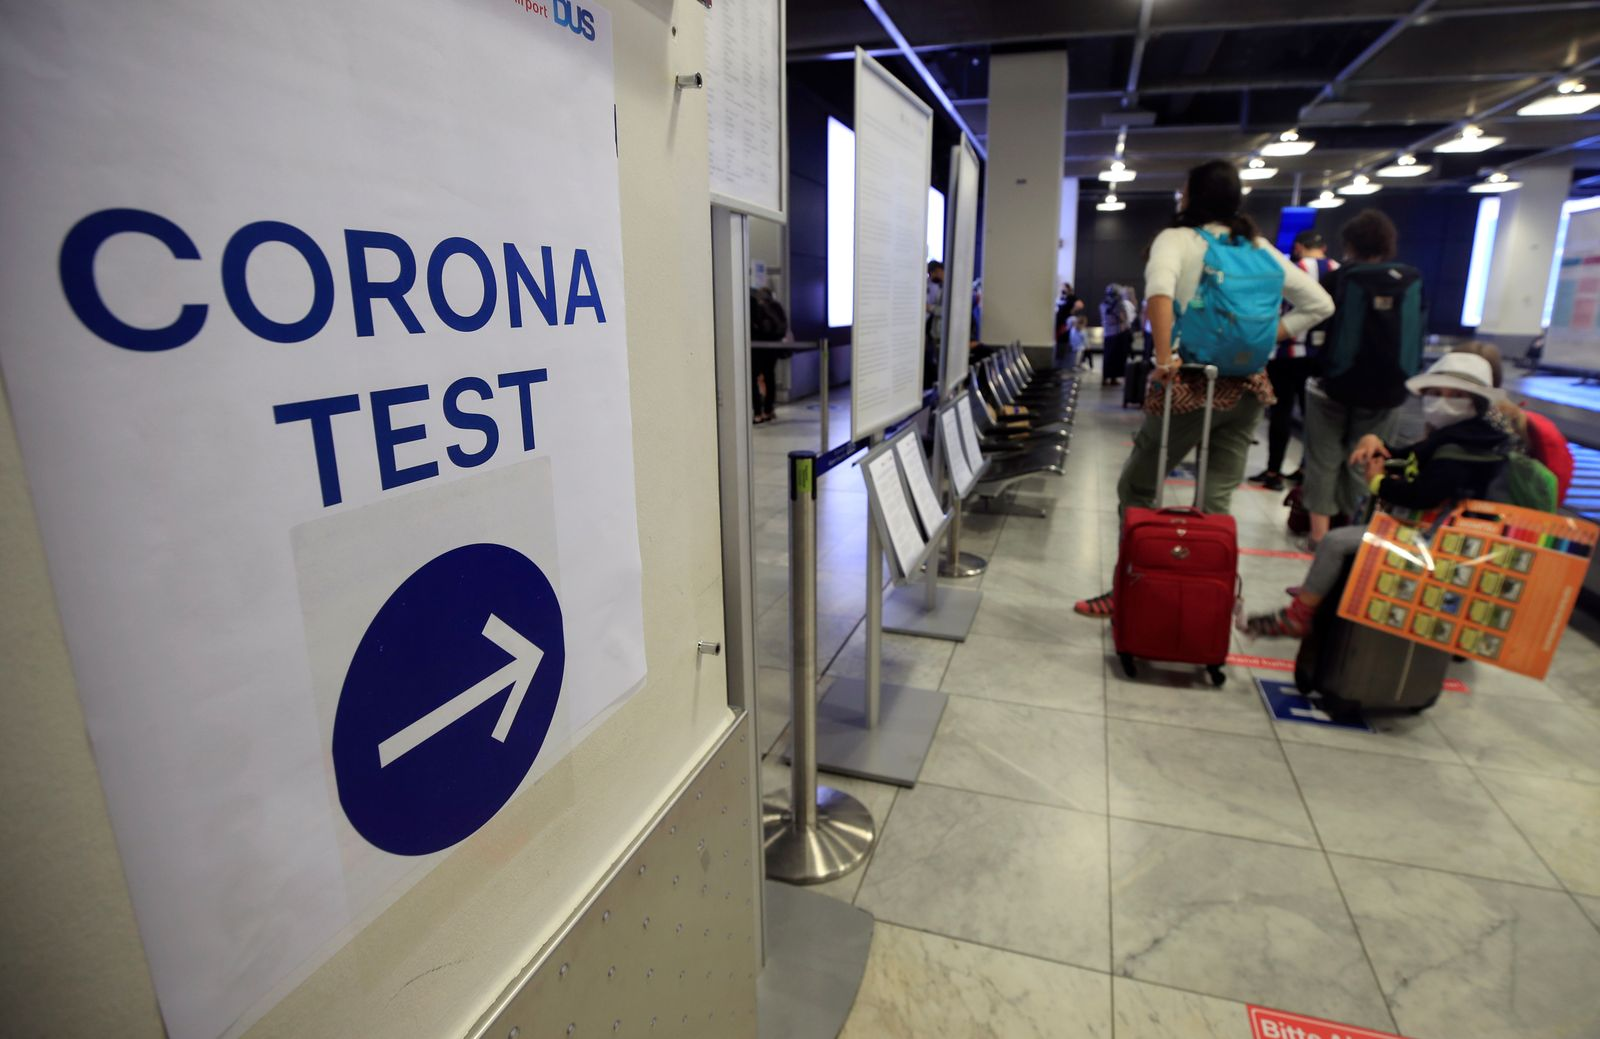 Corona test centre at Duesseldorf Airport